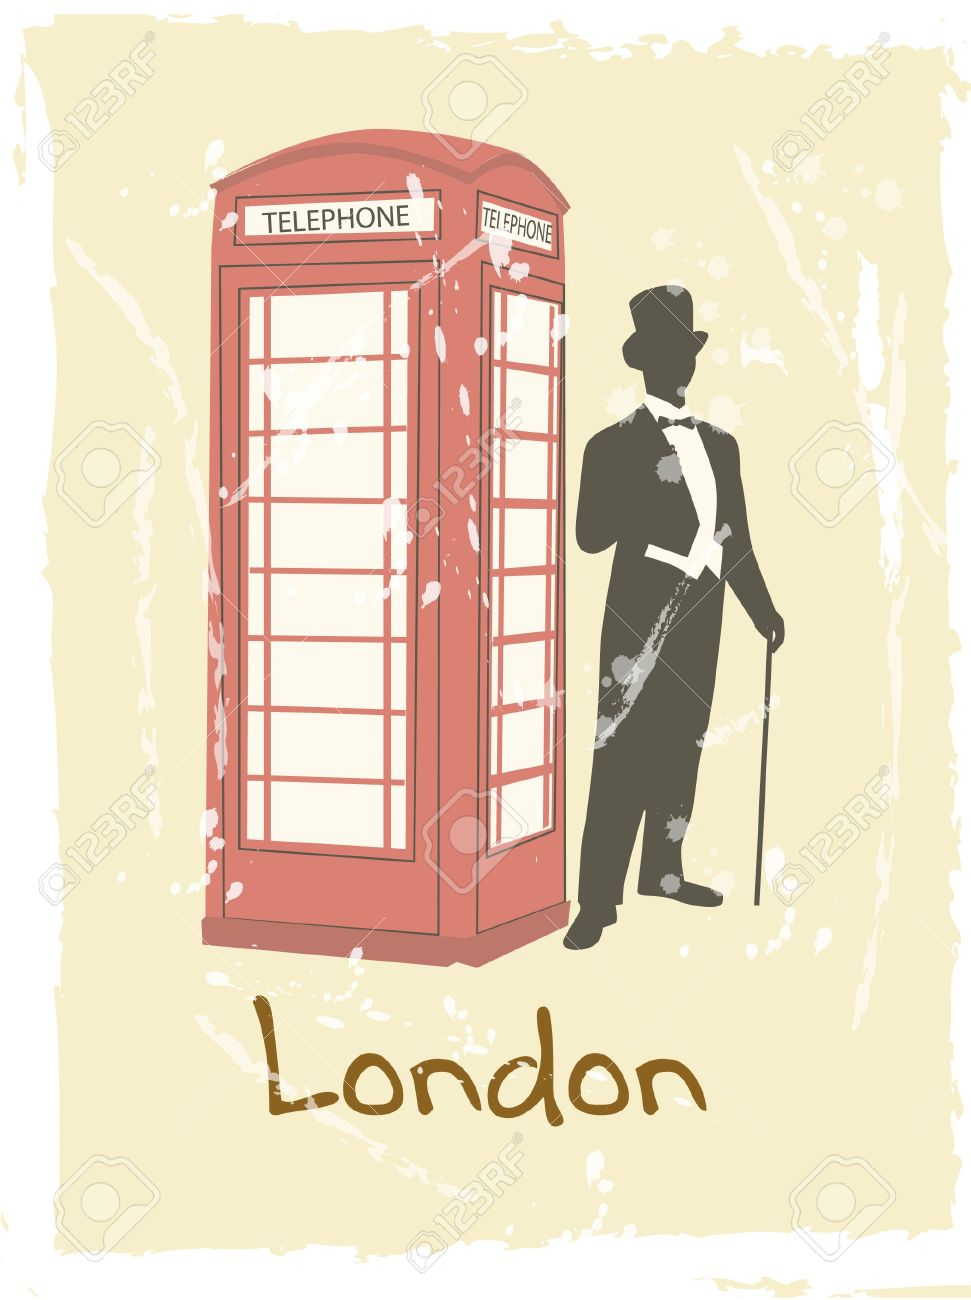 victorian gentleman london doodle with payphone Stock Vector - 19583043